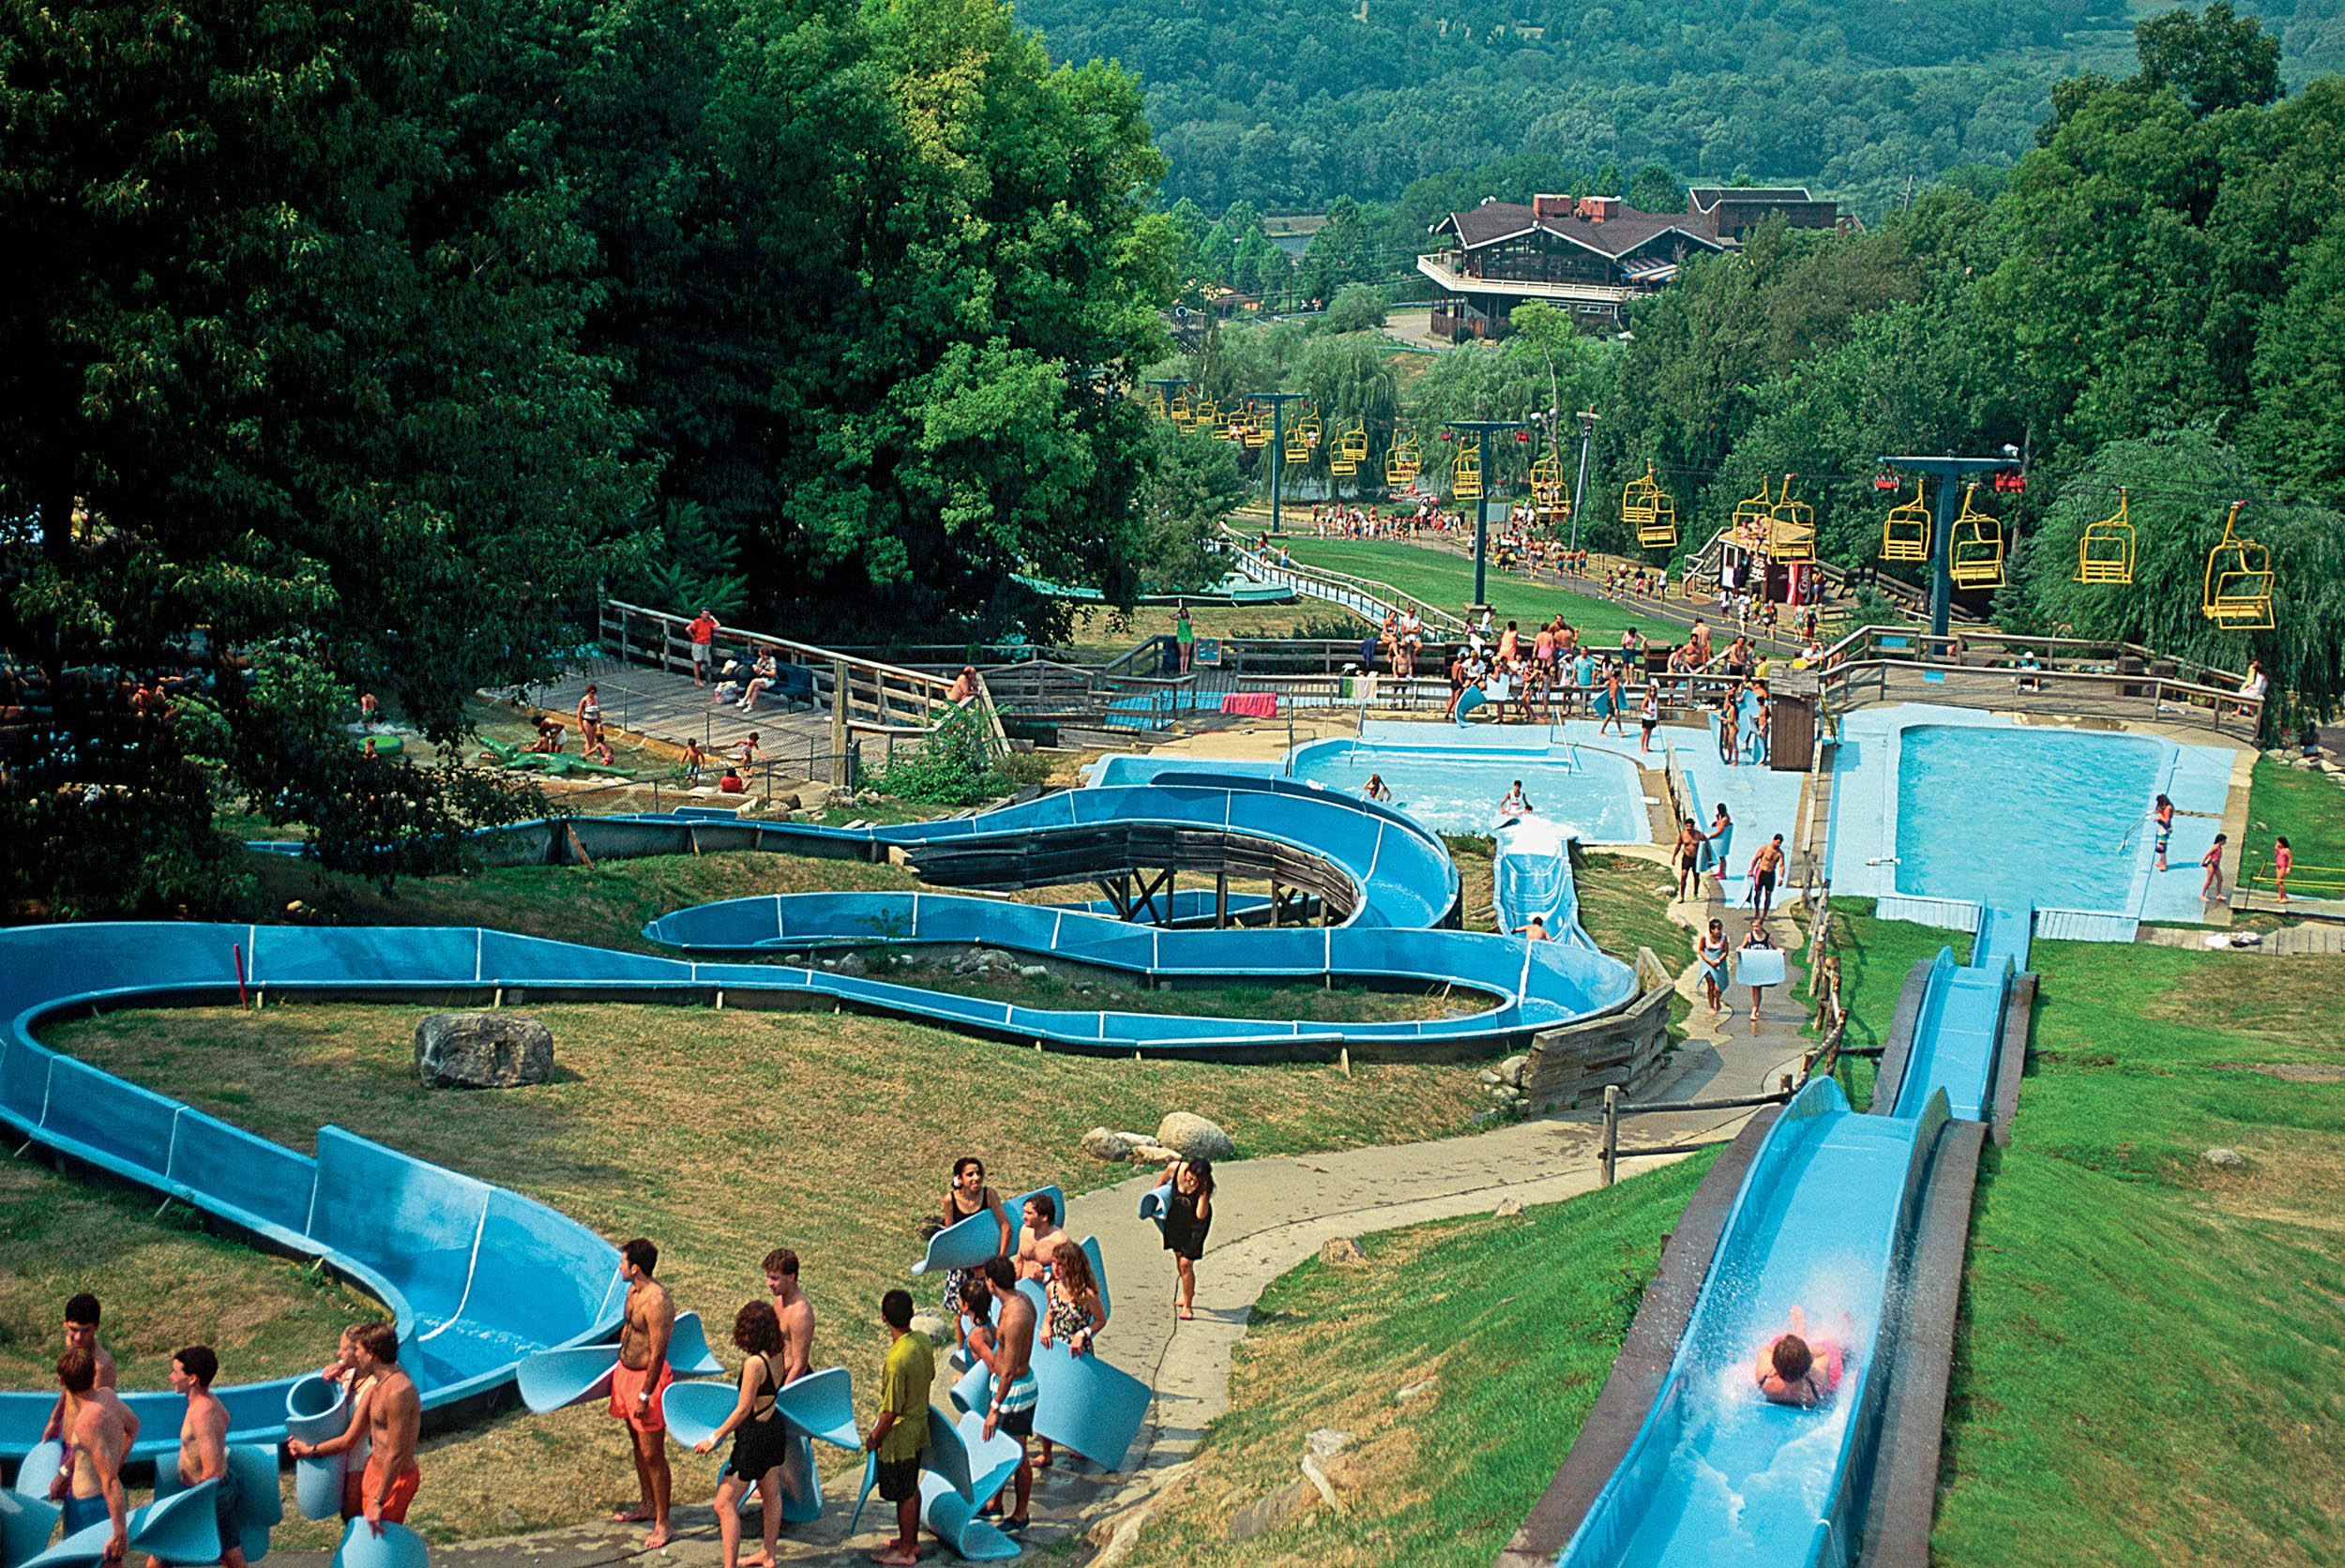 The Perfect Amusement Park Thrills Chills Spills and